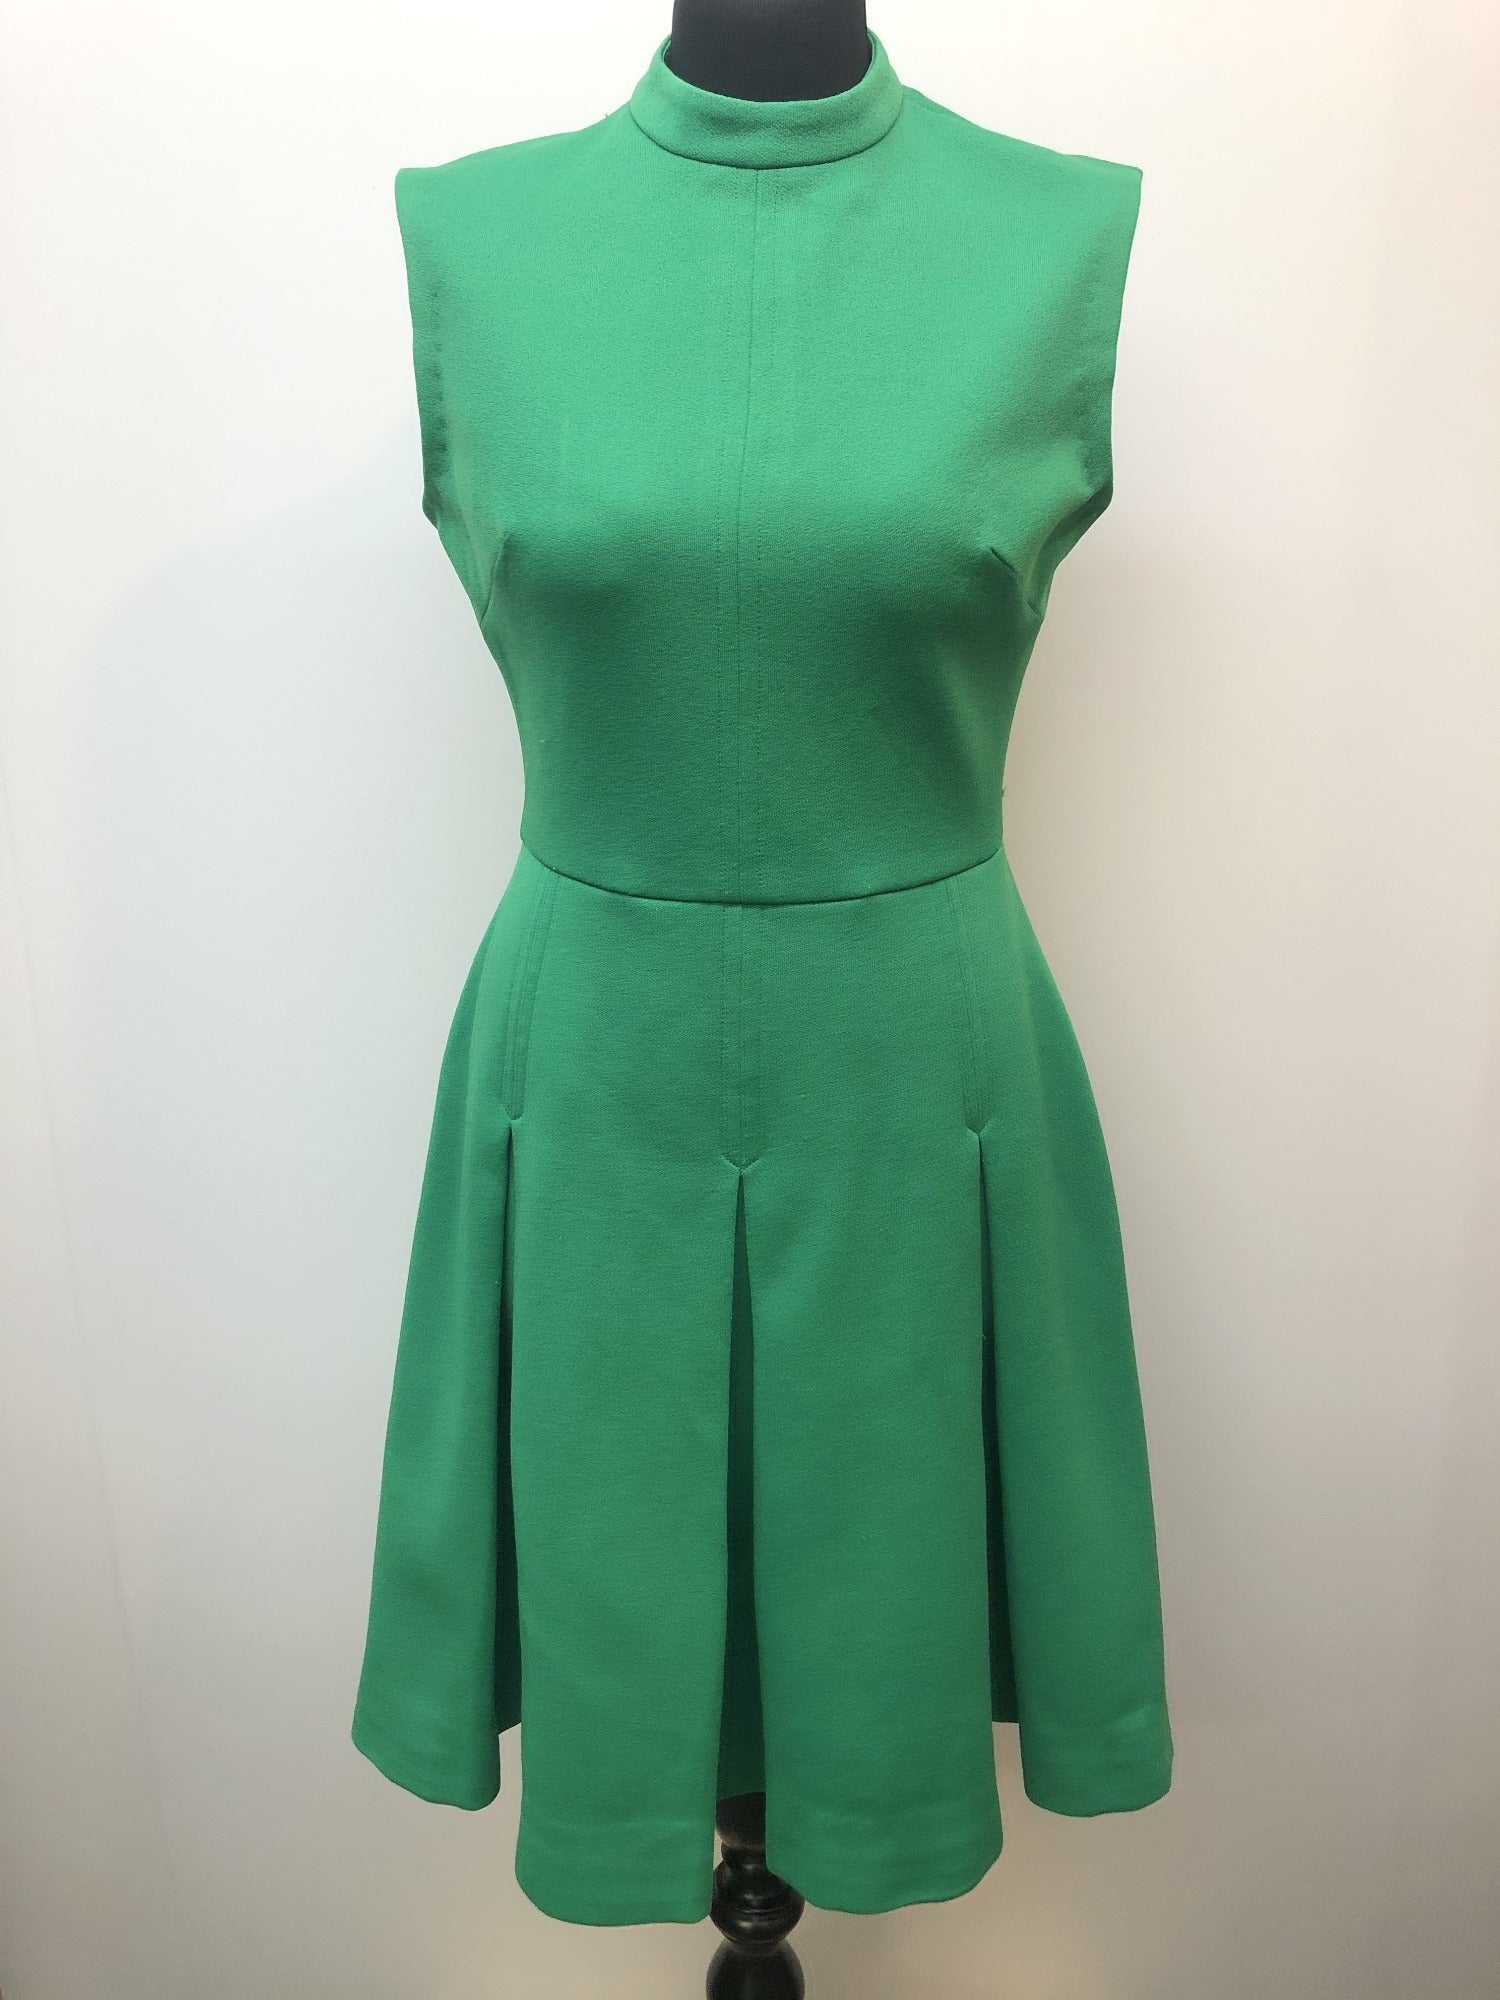 womens  vintage  retro  Mademoiselle  green  dress  60s  1960s  12 urban village vintage